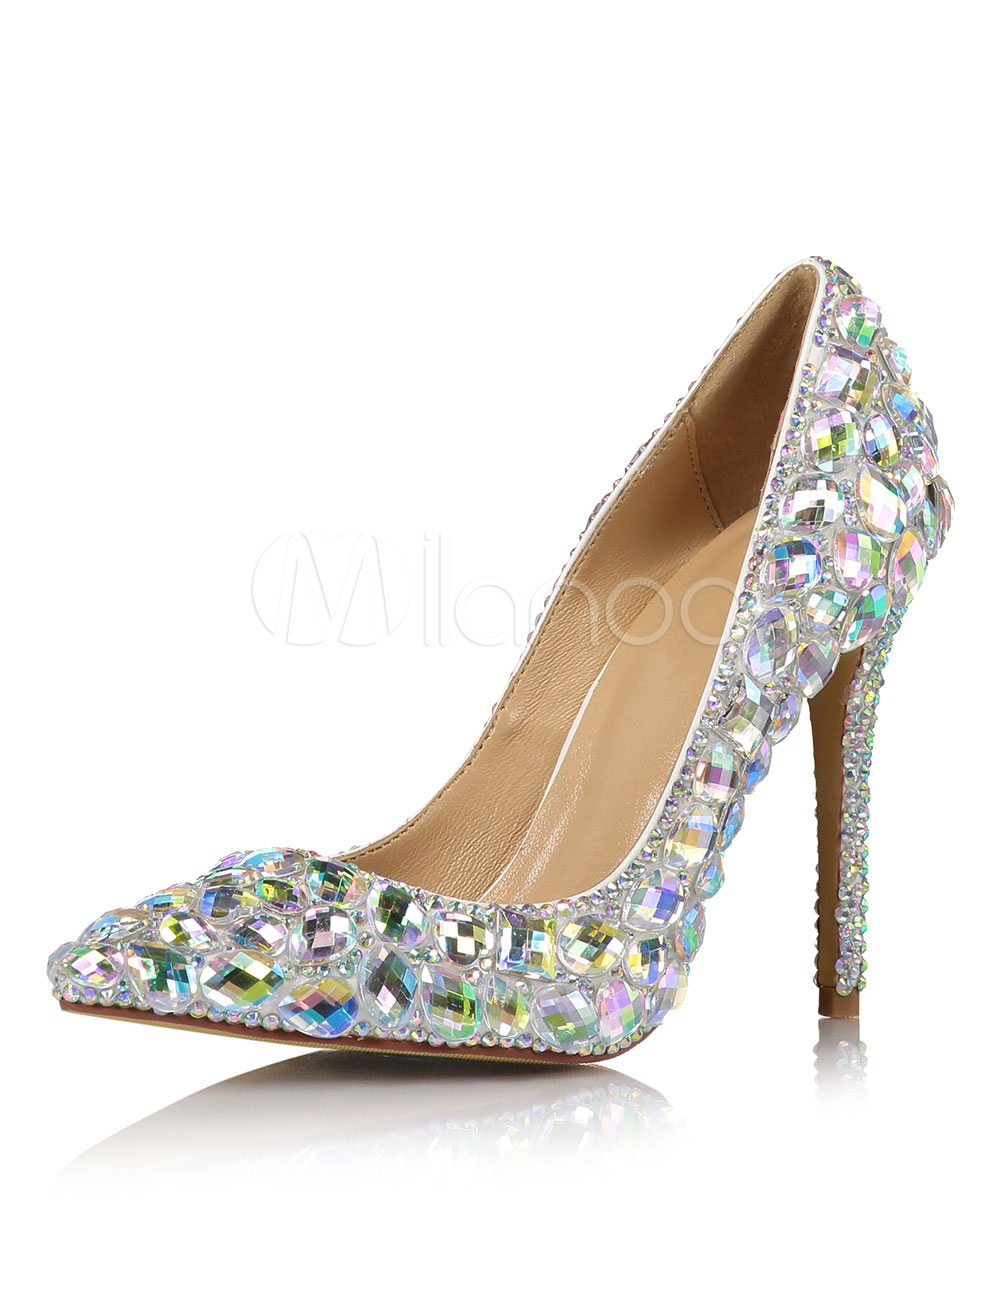 Silver Evening Shoes Pointed Toe Rhinestones Beaded High Heel Pumps